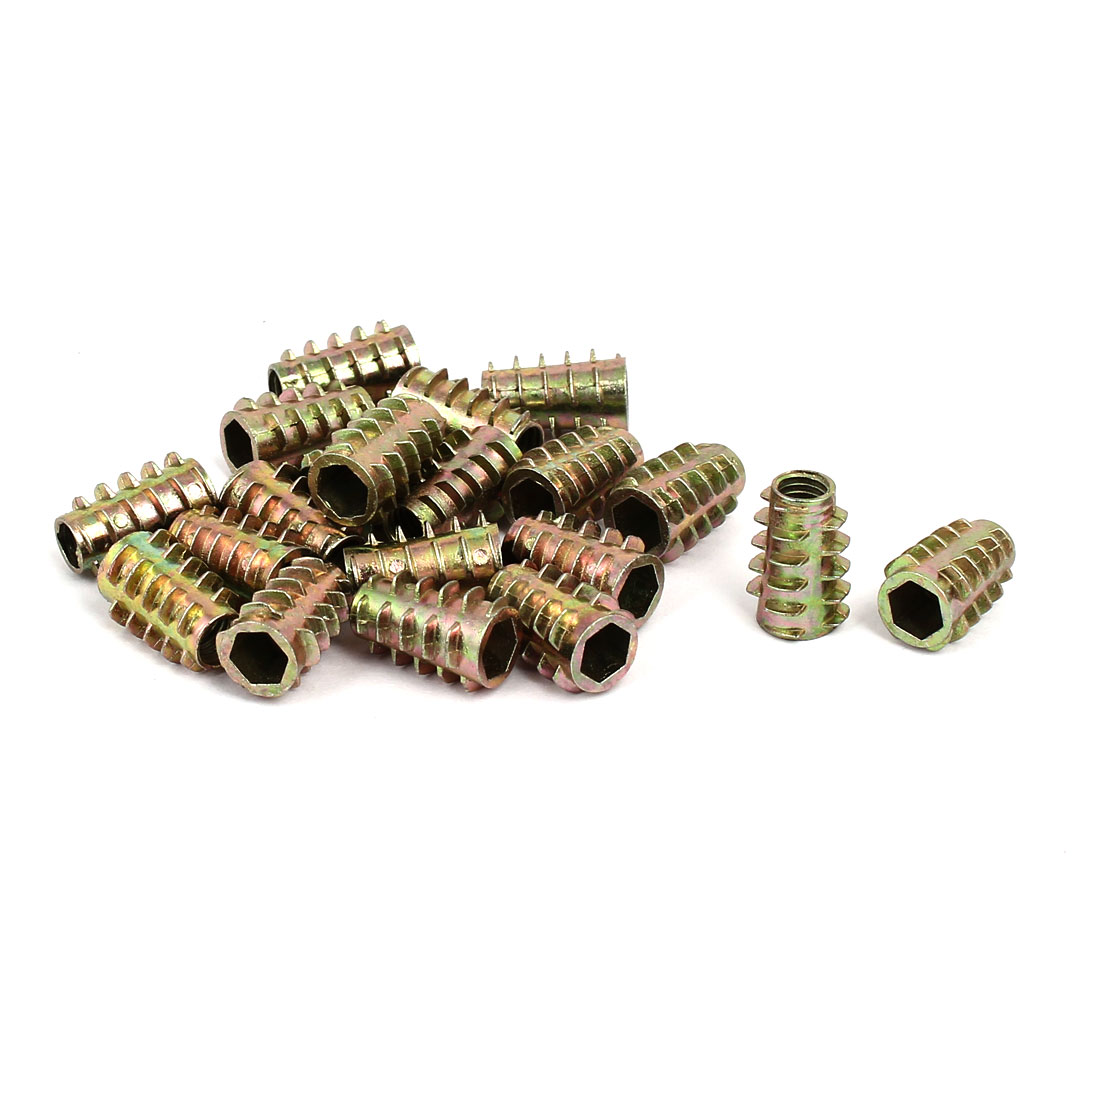 M6x18mm Hex Socket Threaded Insert Nuts Bronze Tone 20pcs for Wood Furniture